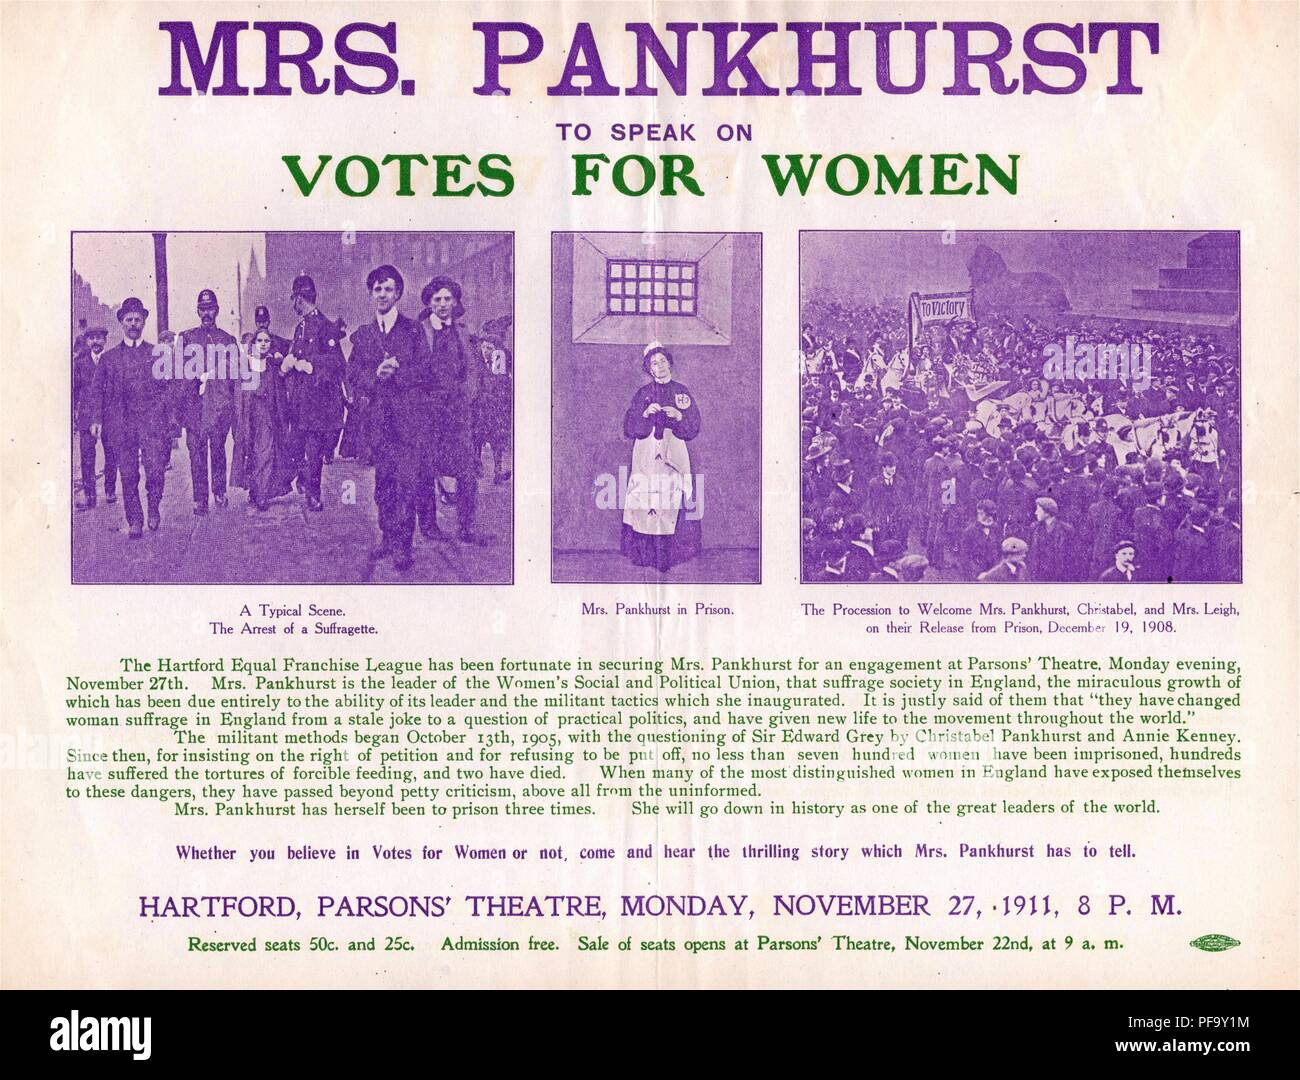 Purple, green and white poster advertising a speaking engagement for the militant, English suffragist Mrs Emmeline Pankhurst, at the Parson's Theatre in Hartford, Connecticut, with a triptych of images depicting a suffragist's arrest, Emmeline Pankhurst in prison, and a procession welcoming her release, published for the American market, November, 1911. () - Stock Image